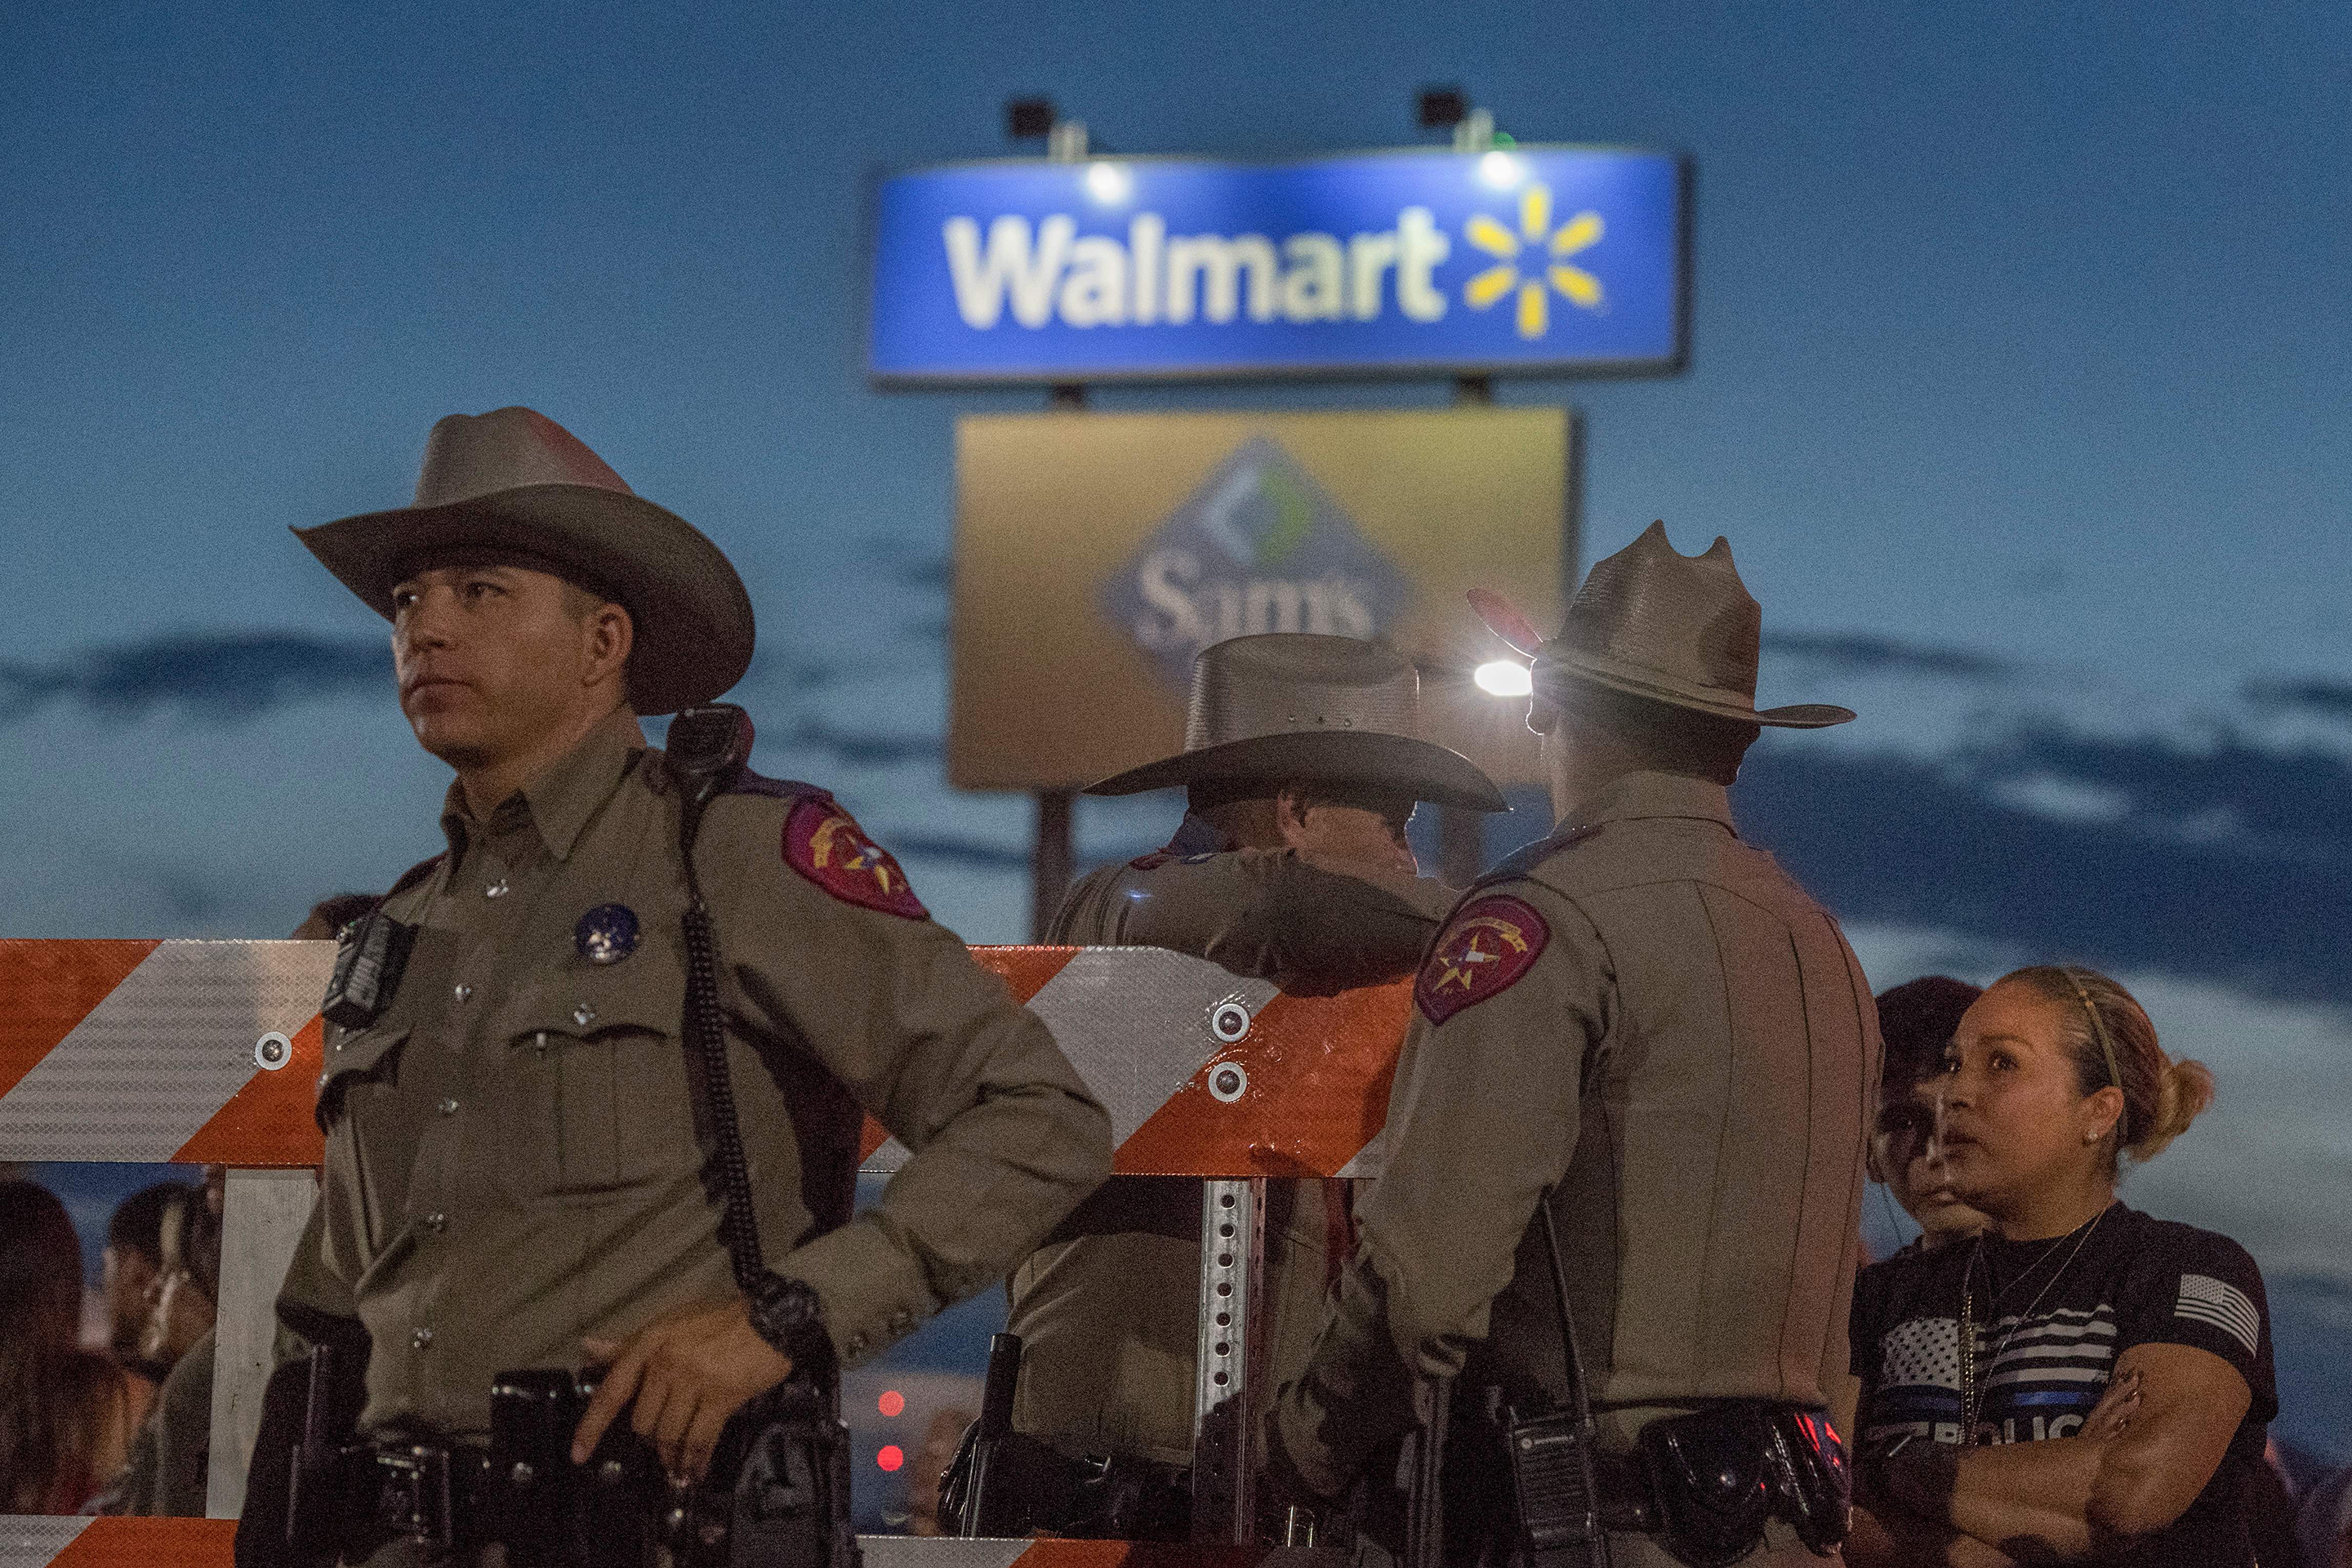 Texas Troopers Walmart Mass Shooting